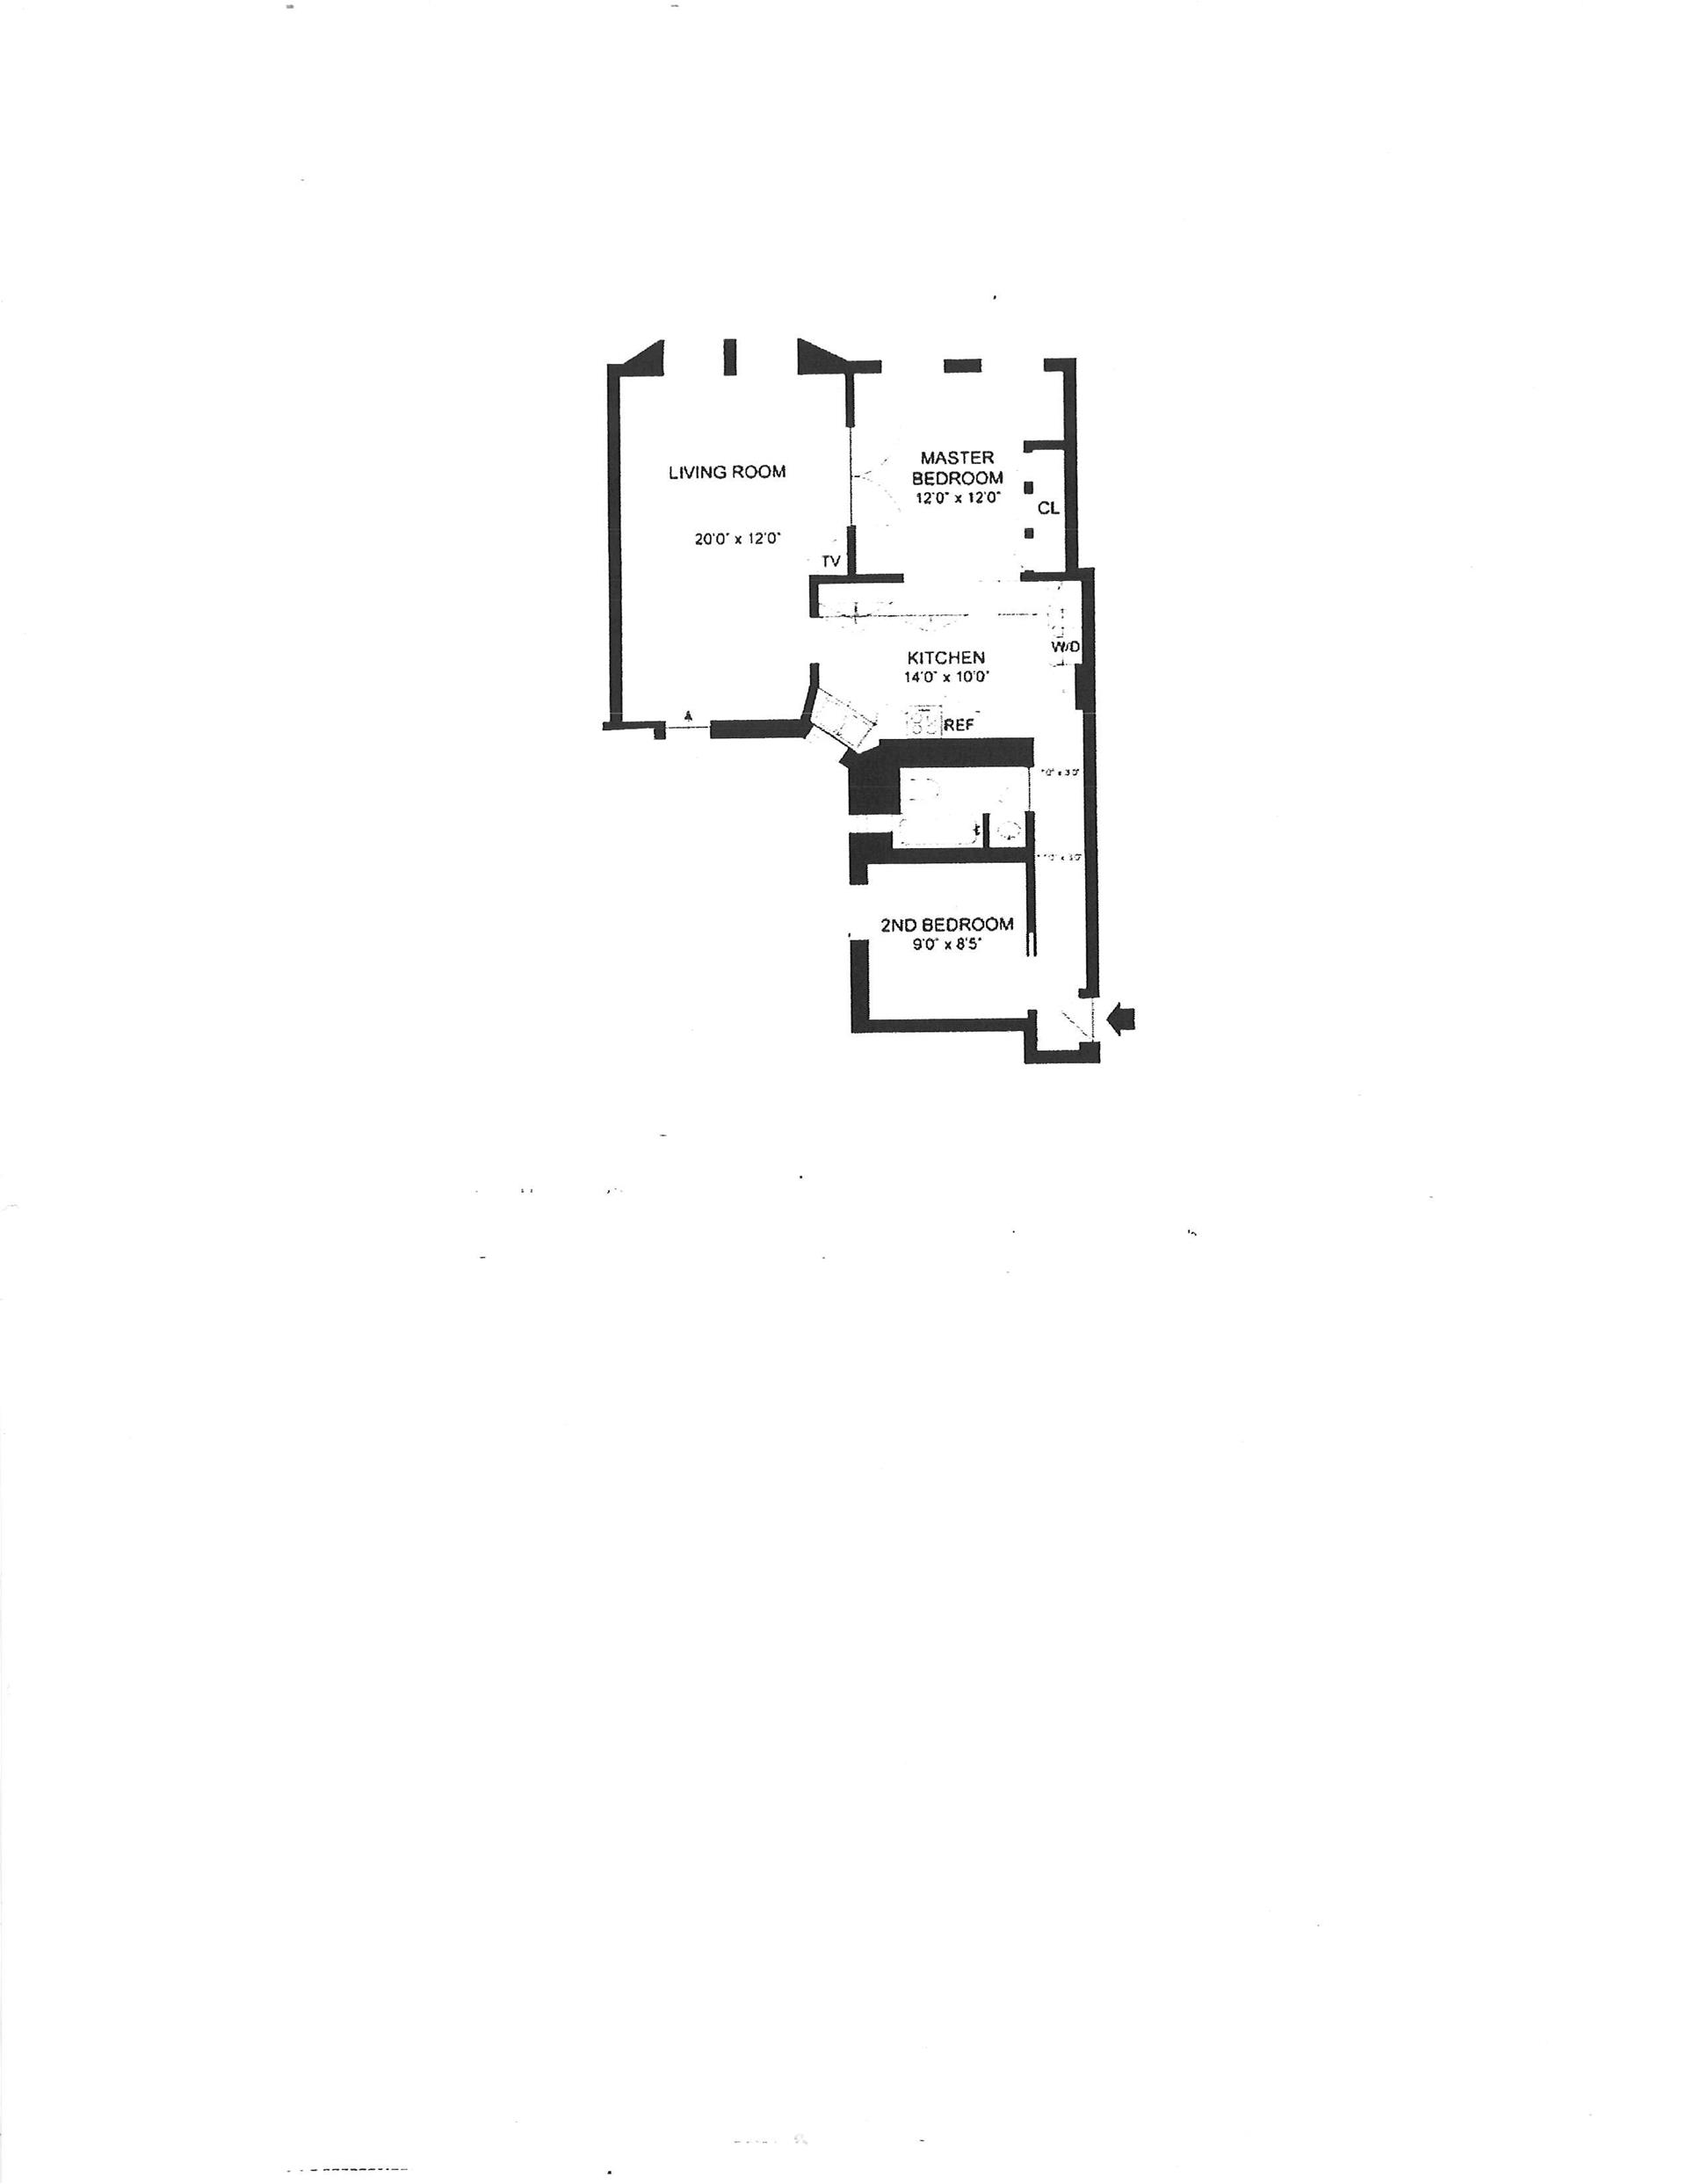 Floor plan of 125 East 4th Street, 8 - East Village, New York